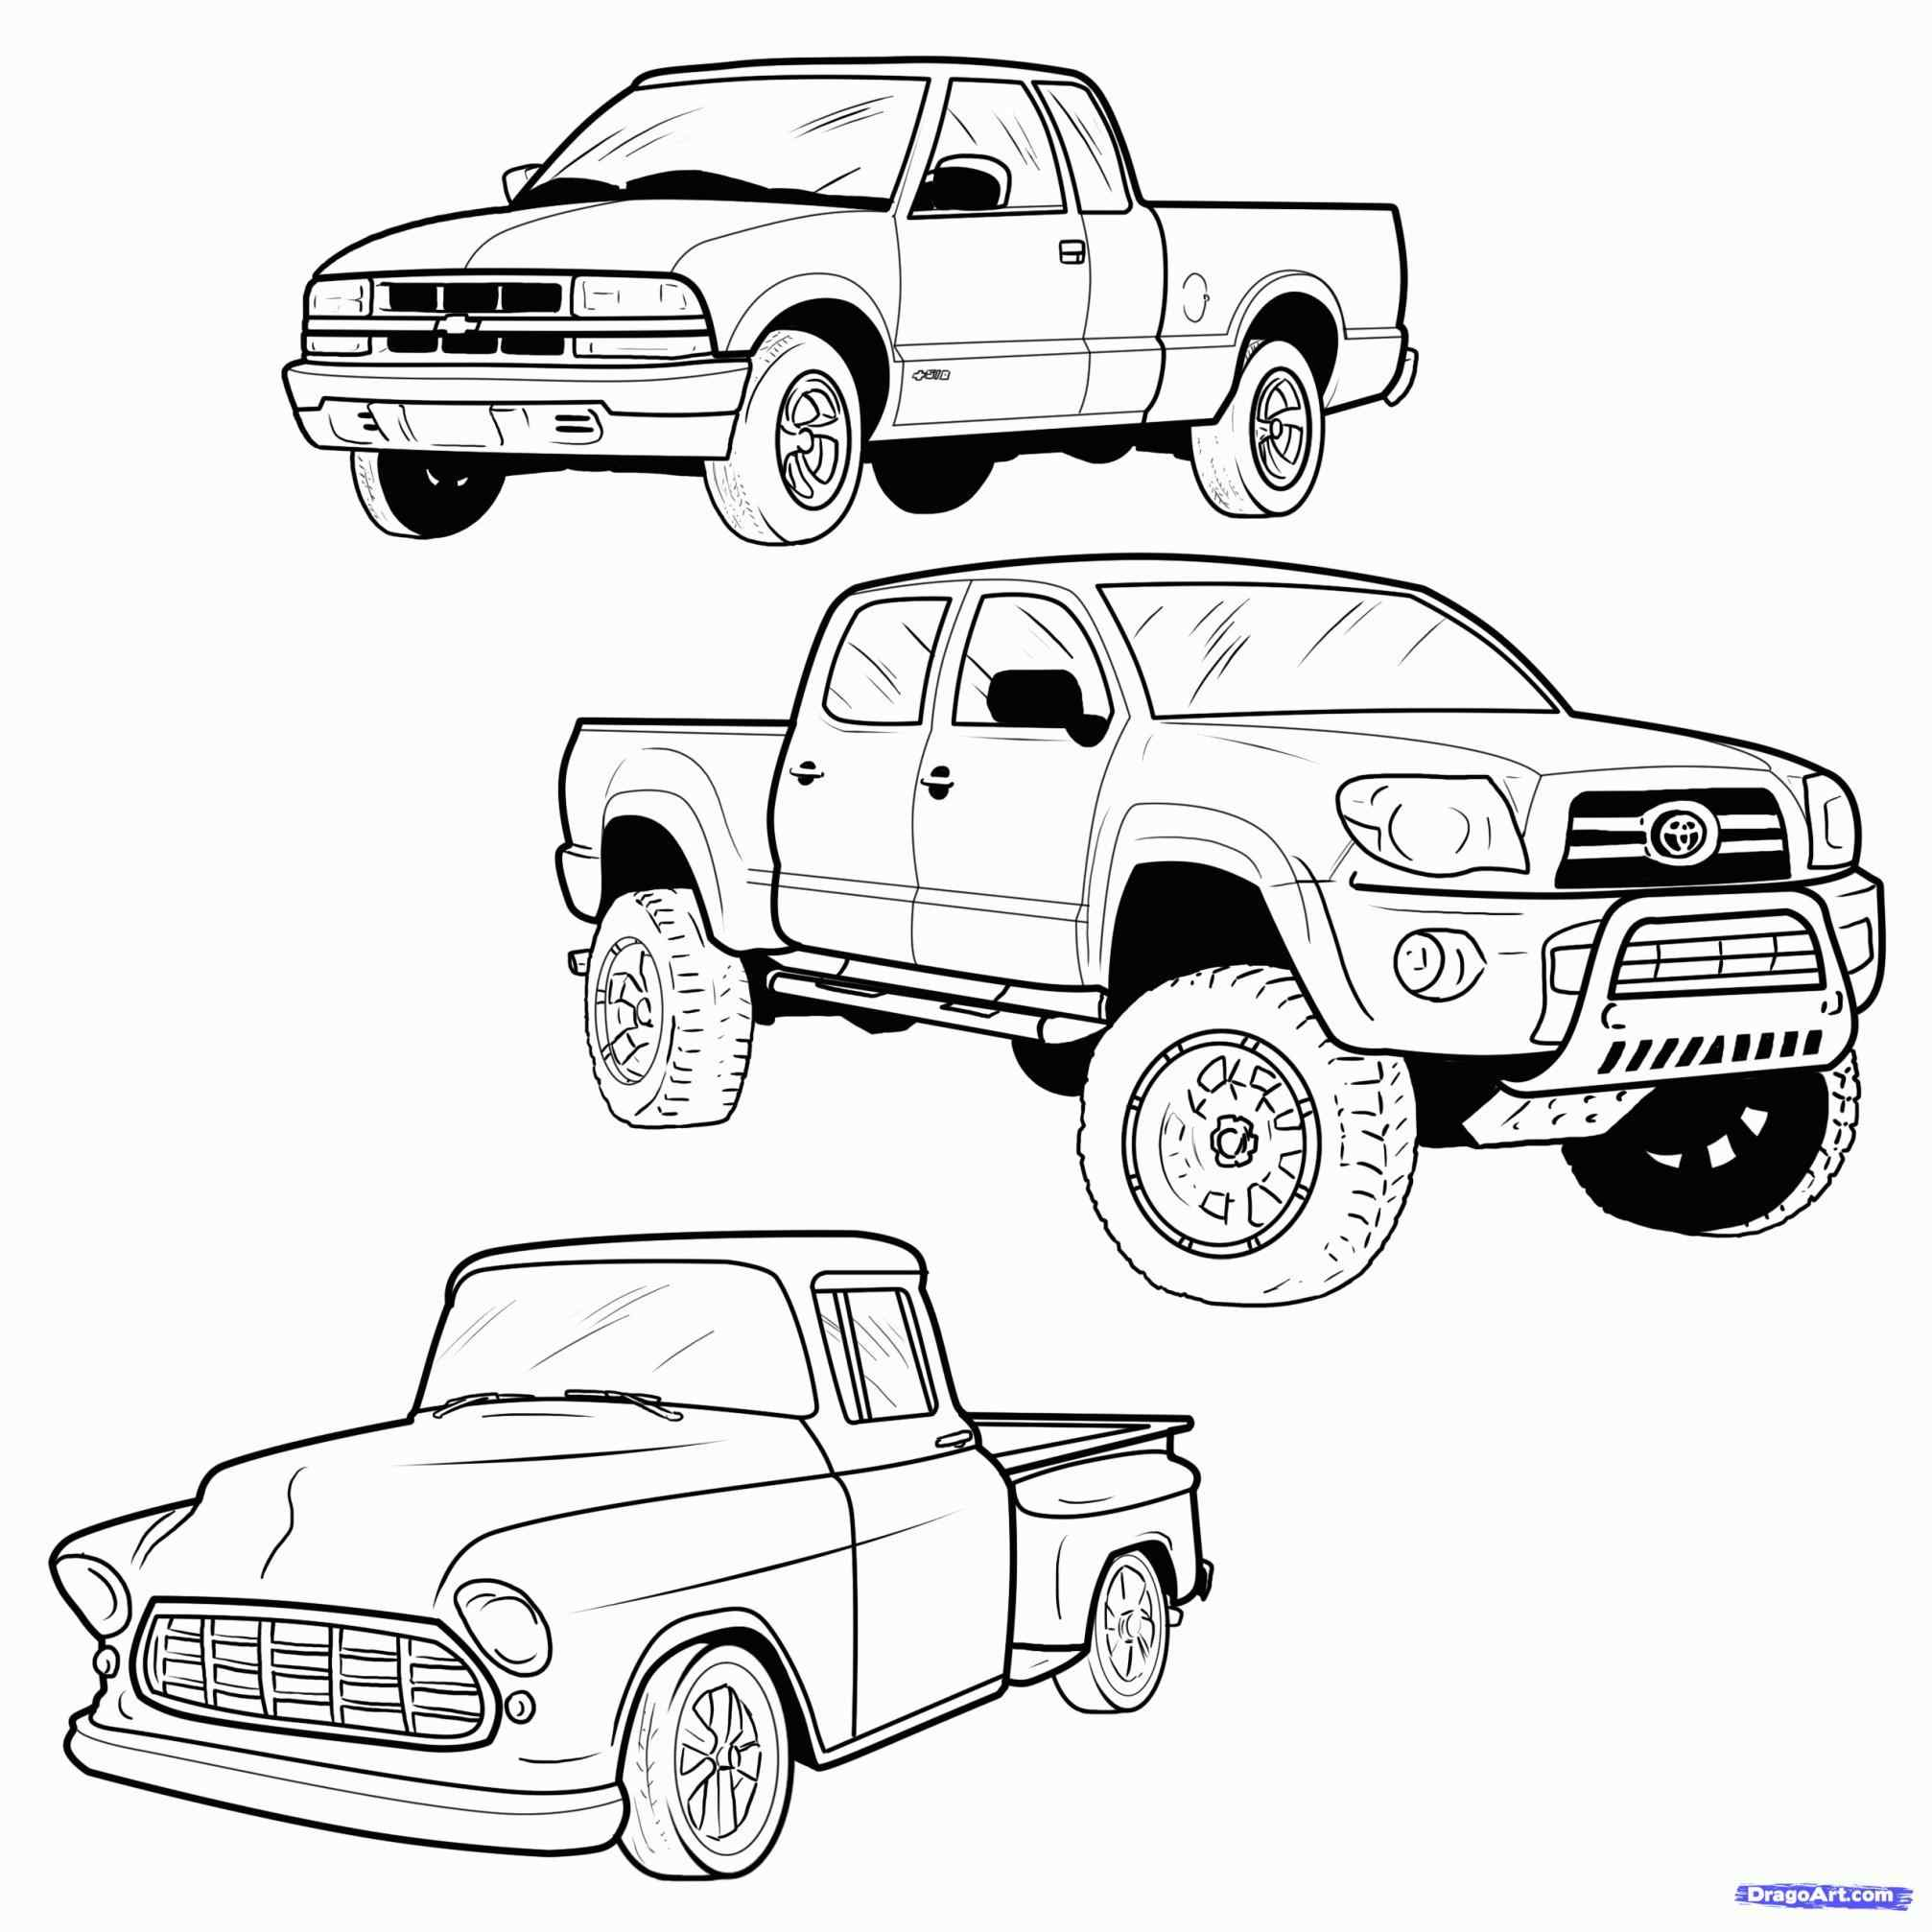 2014x2014 The Images Collection Of Line Drawing Drawn Delivery Service Stock